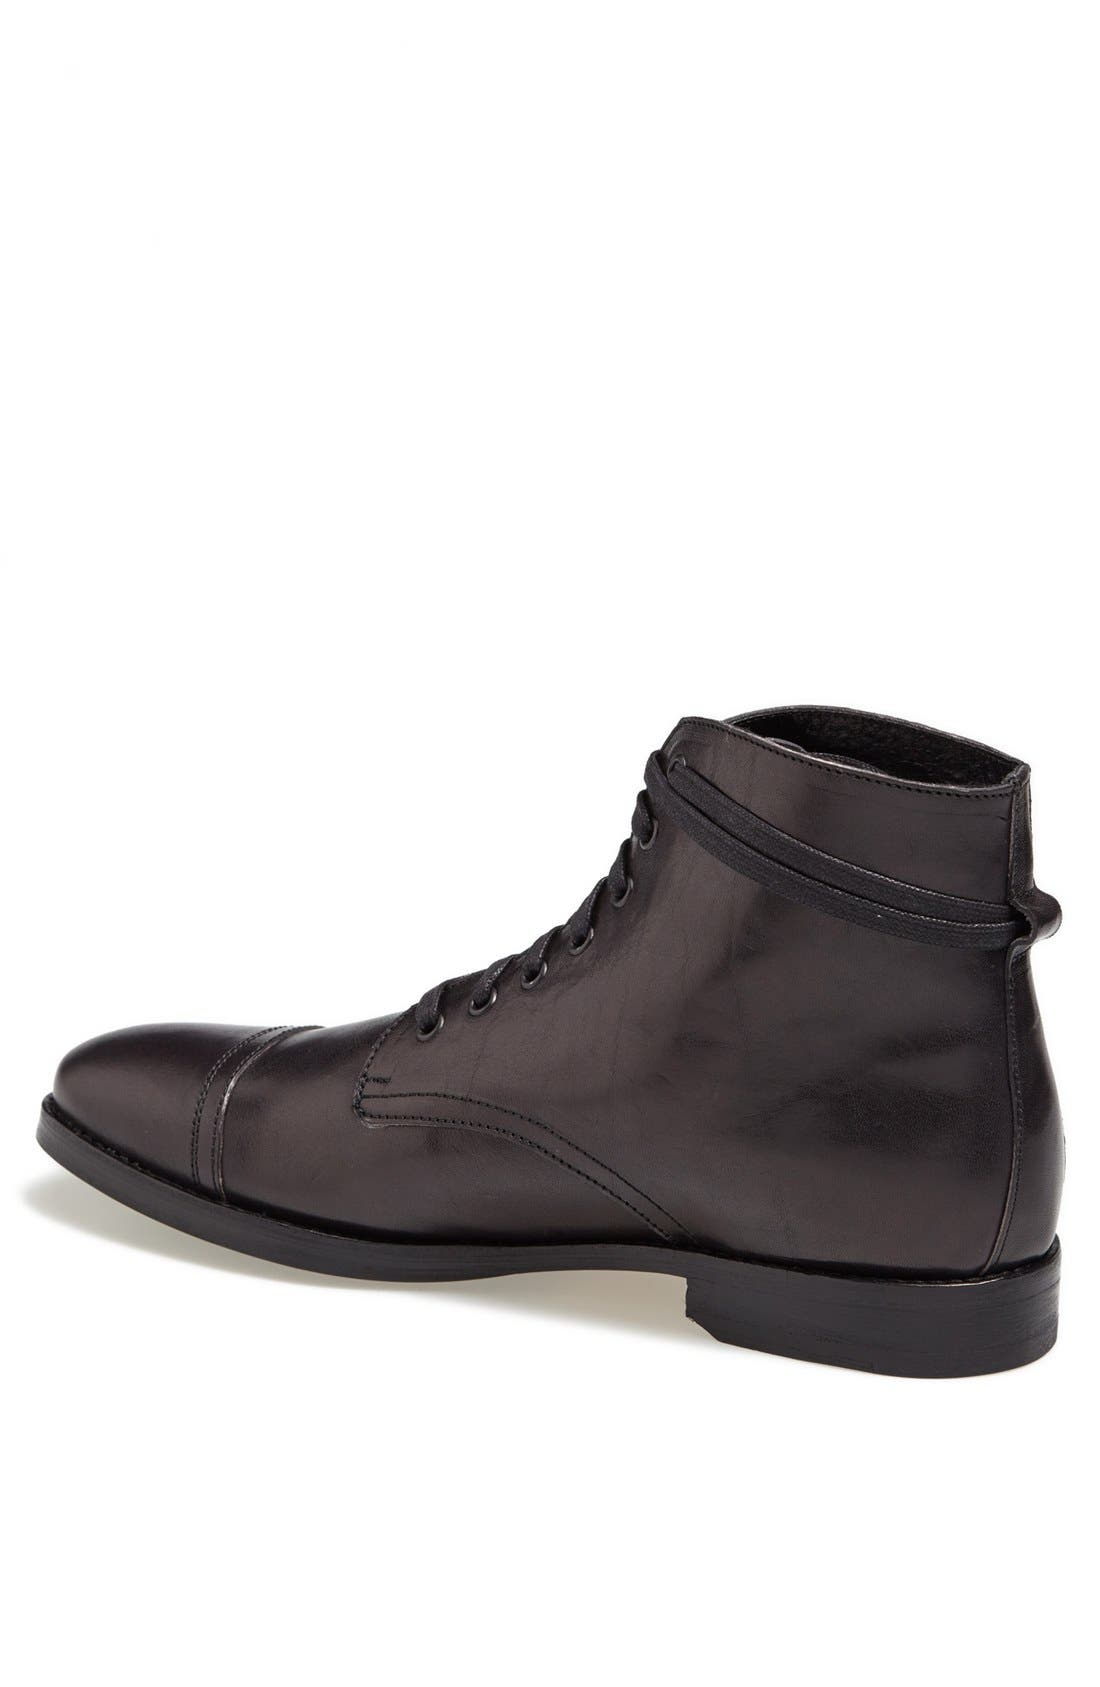 Alternate Image 2  - Maison Forte 'Malleus II' Cap Toe Boot